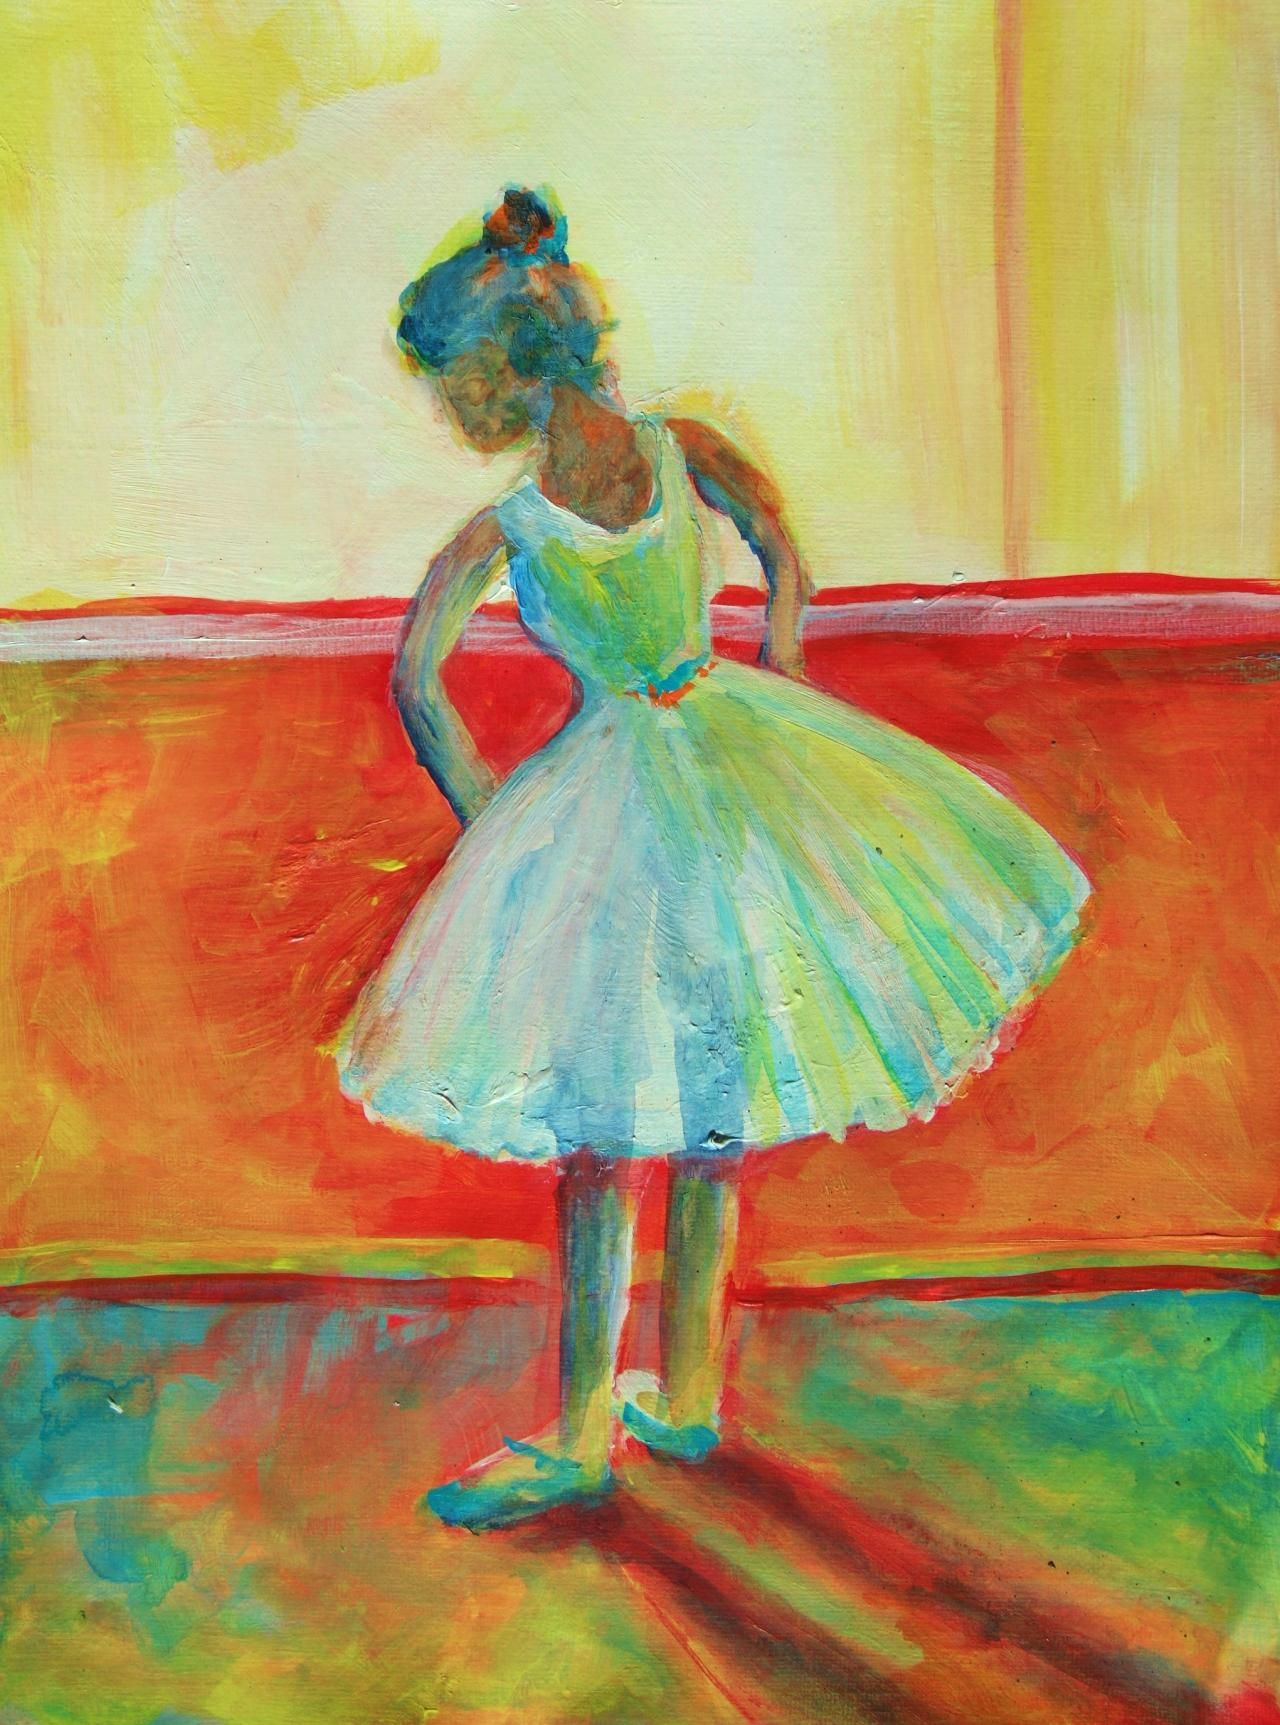 Easy Painting Easy Acrylic Painting My Dancing Shoes Art Acrylic Painting